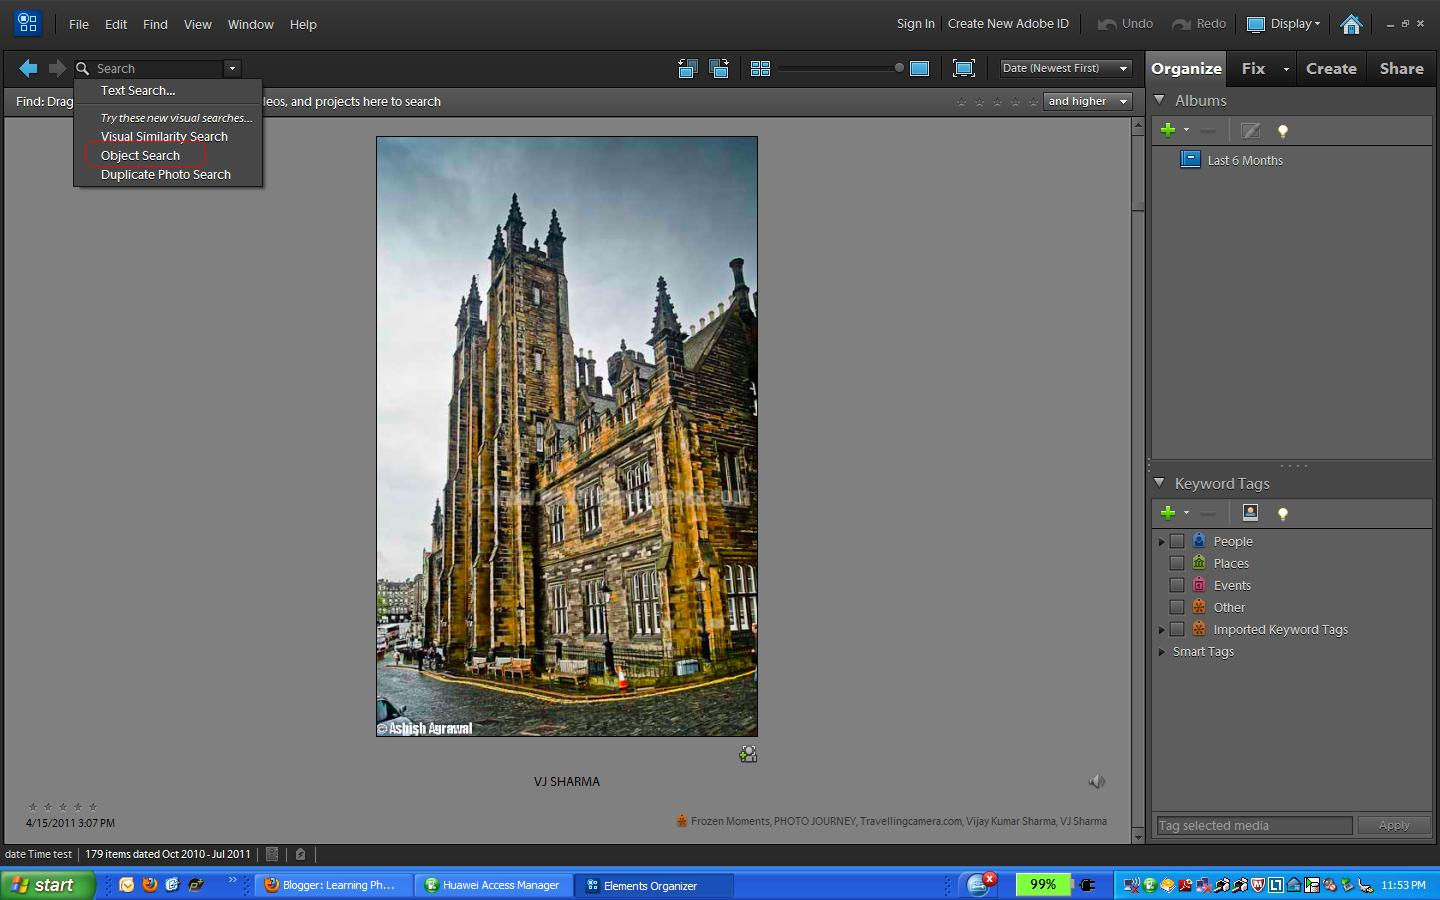 New features in 10th version of adobe photoshop elements object for me elements organizer is main component so starting with new features in elements organizer baditri Images